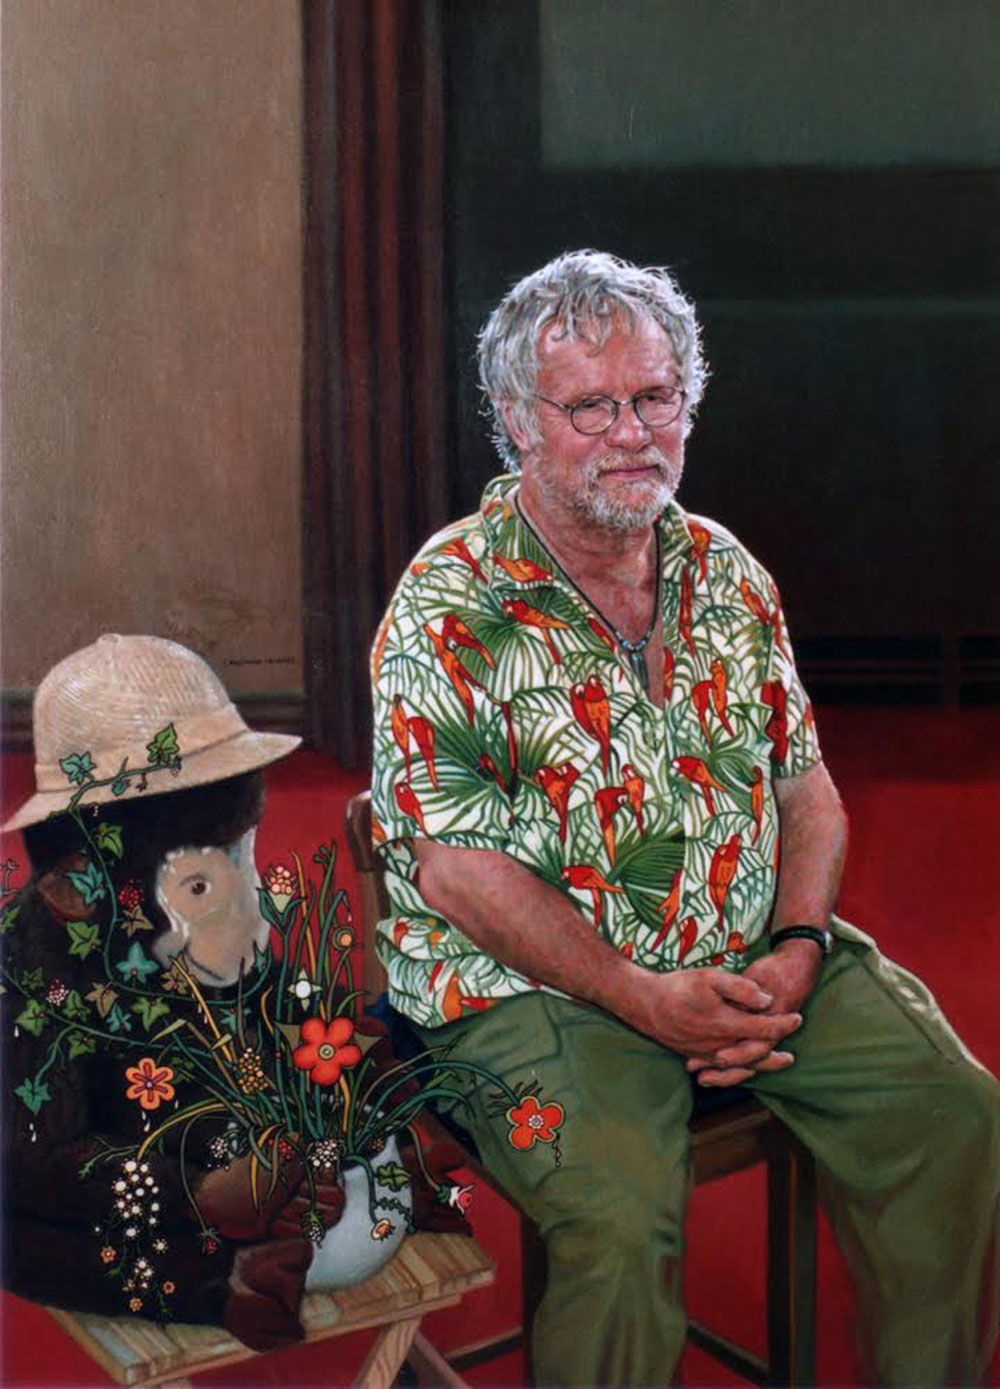 He once painted TV presenter Bill Oddie